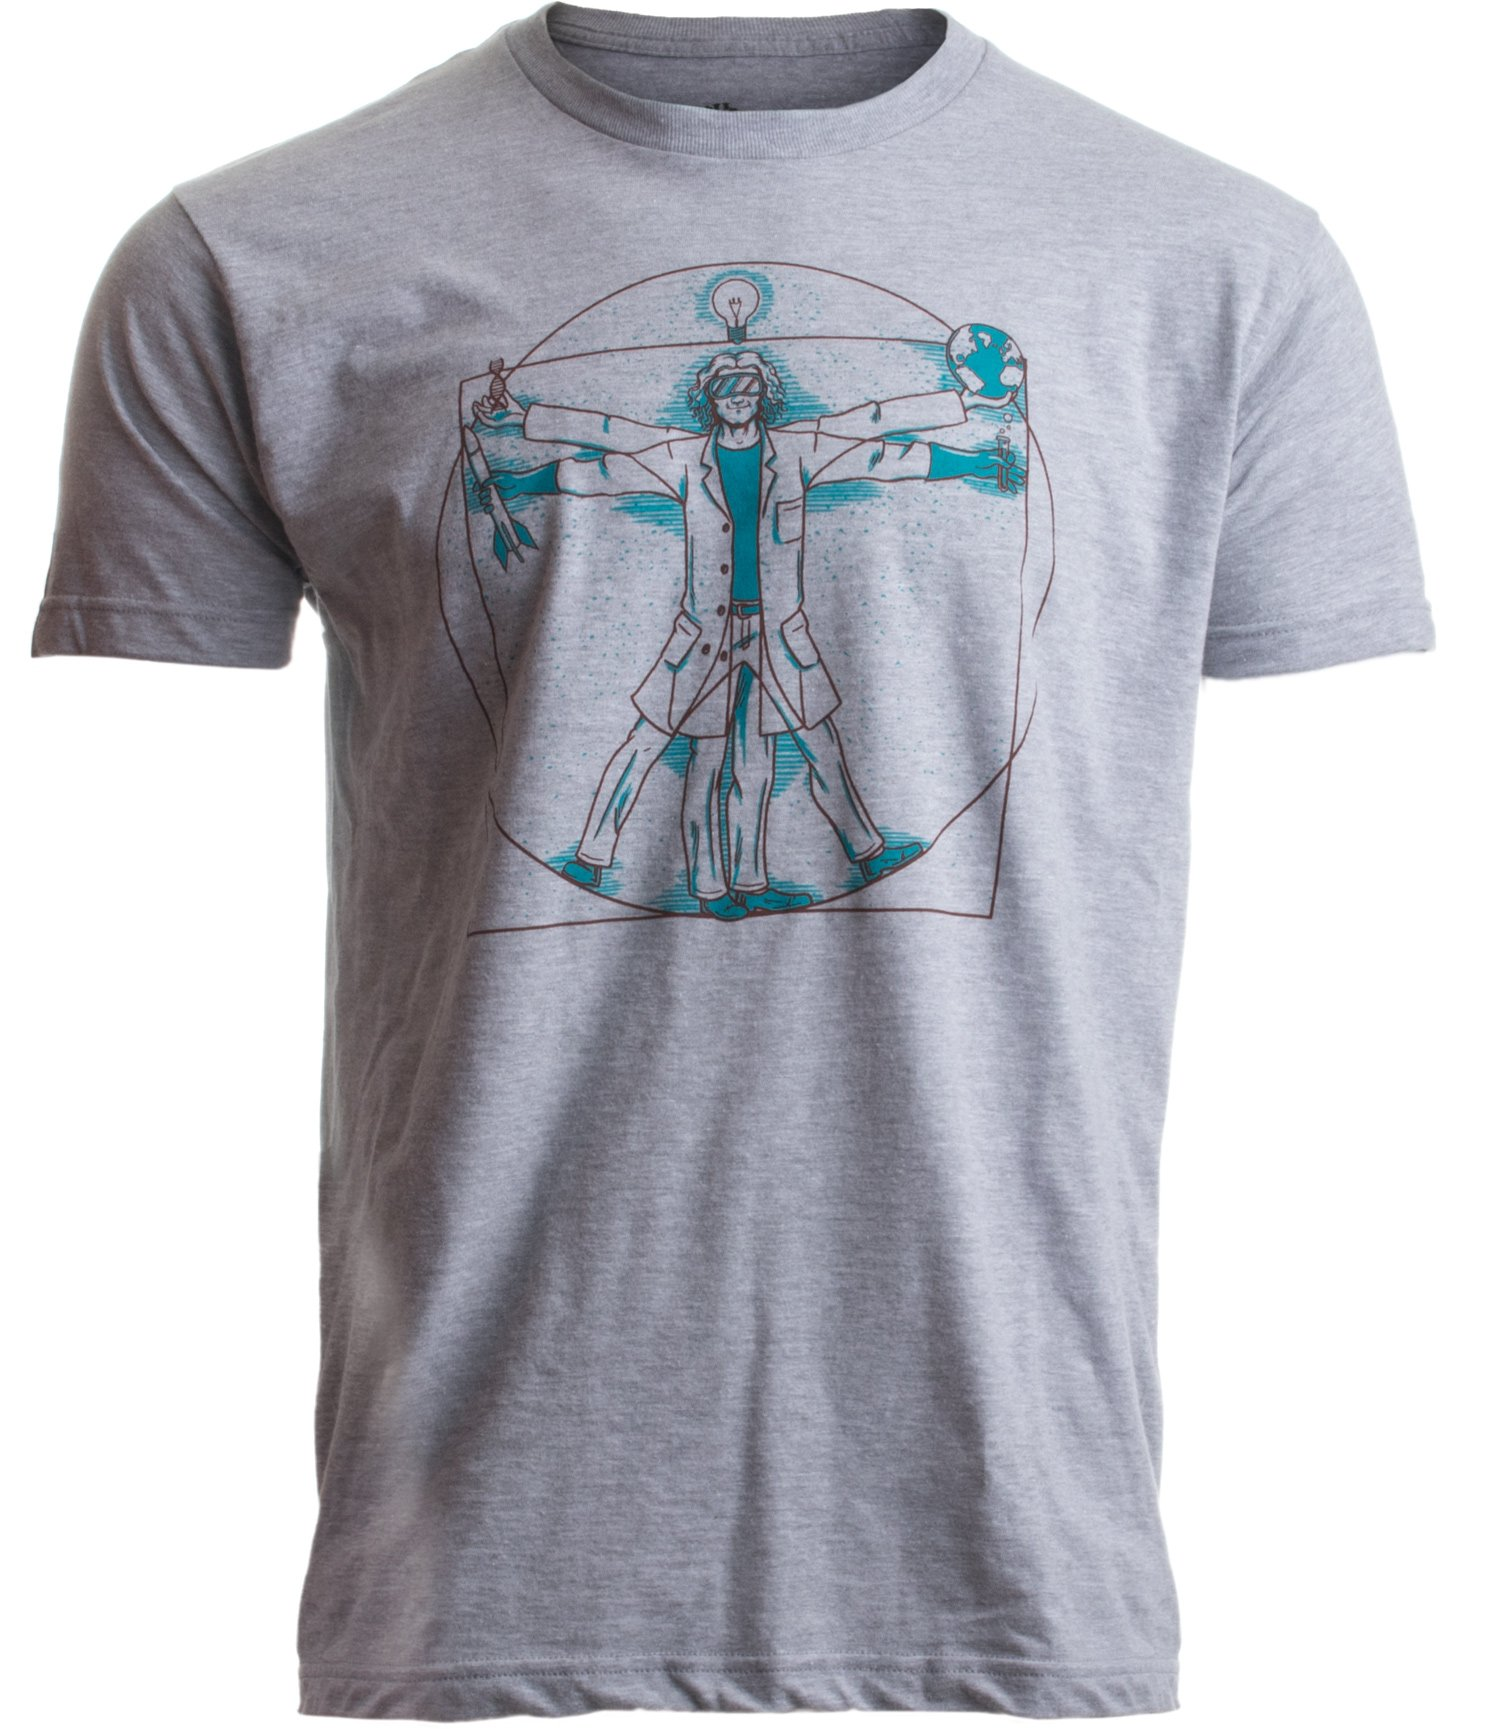 Vitruvian Scientist | Funny Cool Science Nerd Nerdy Geek Geeky Men Women T-Shirt